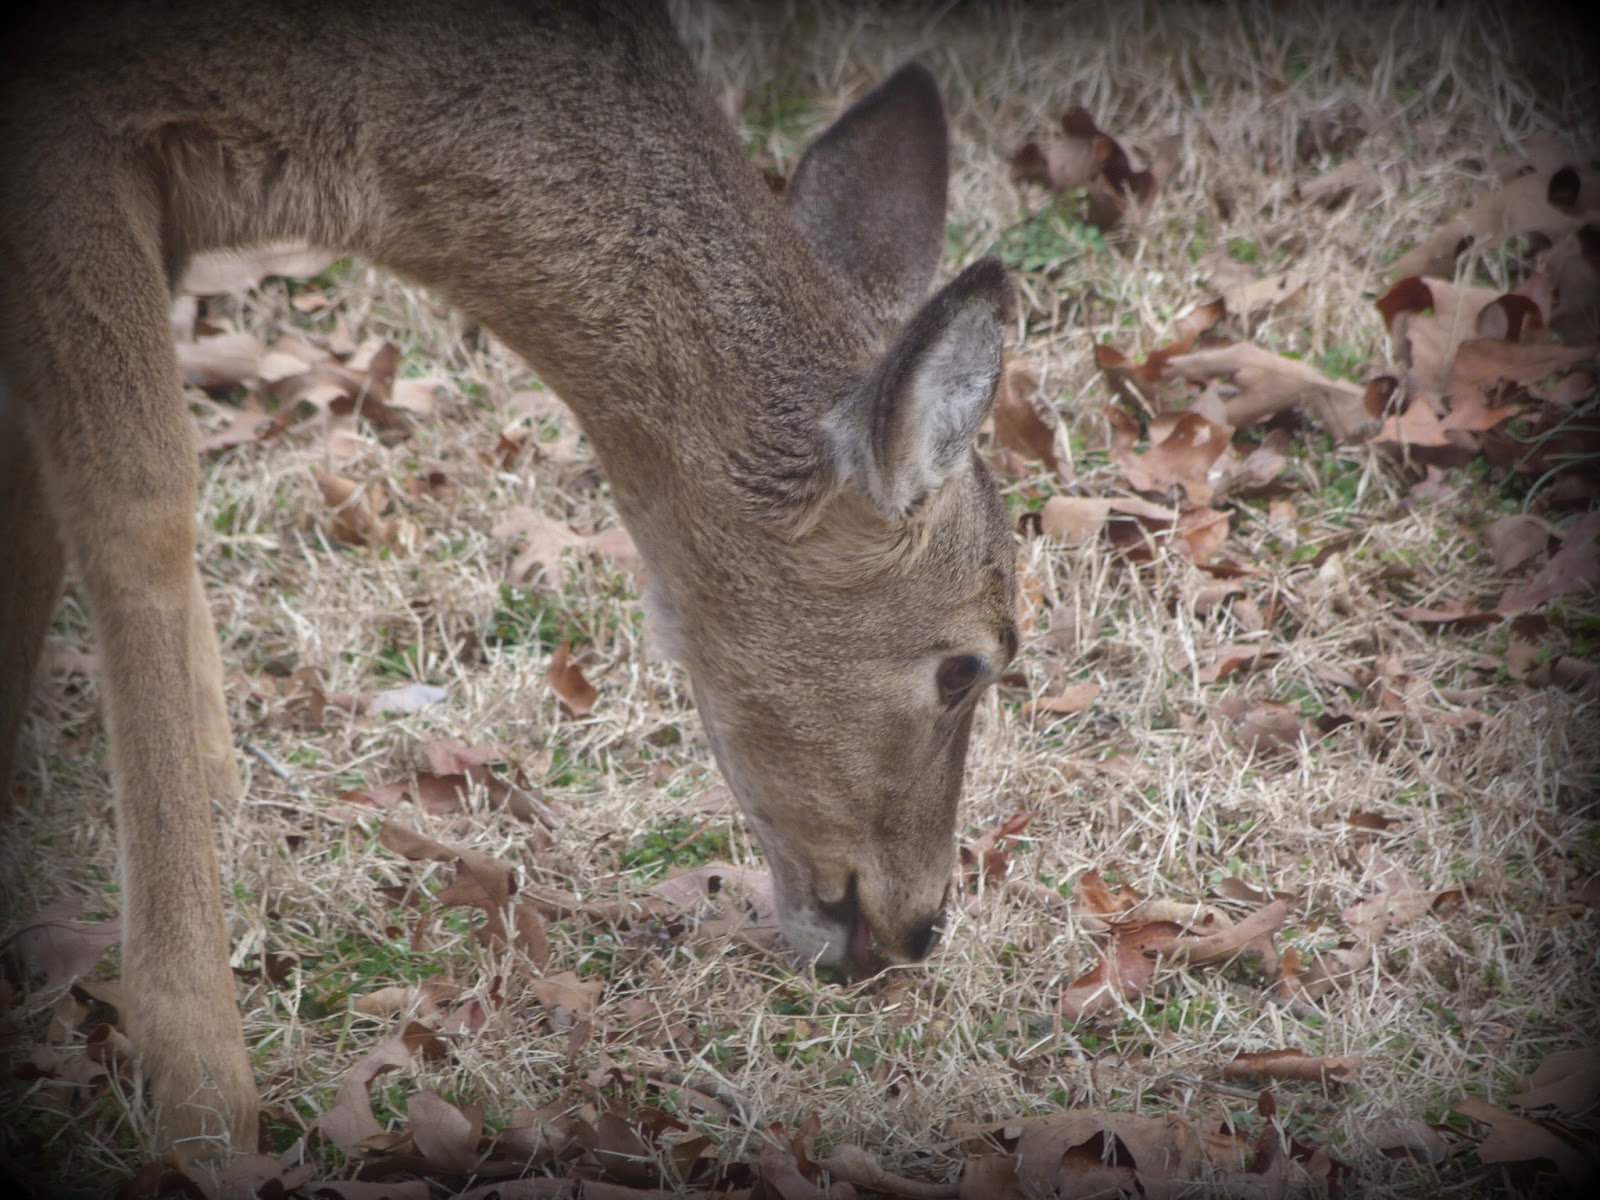 CHMusings: Deer eating grass